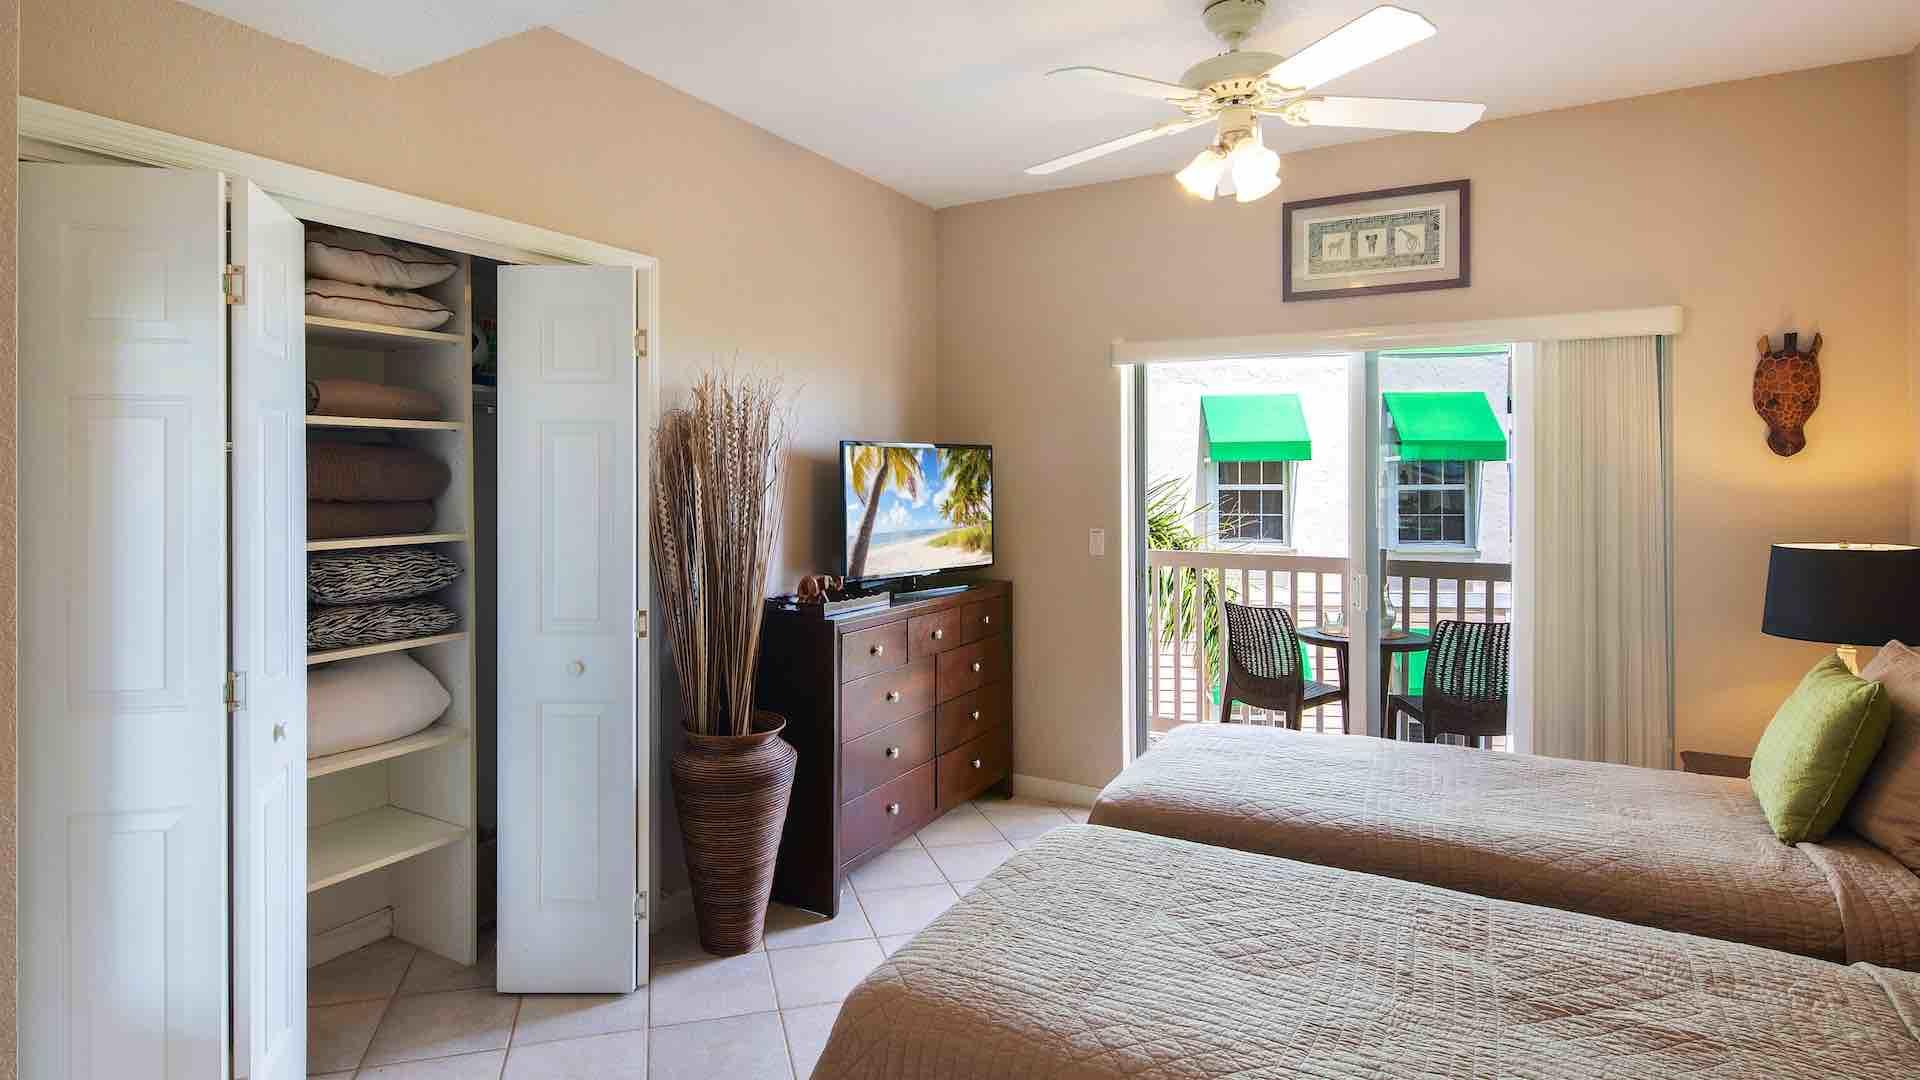 The second bedroom also has a flat screen TV and a large closet...